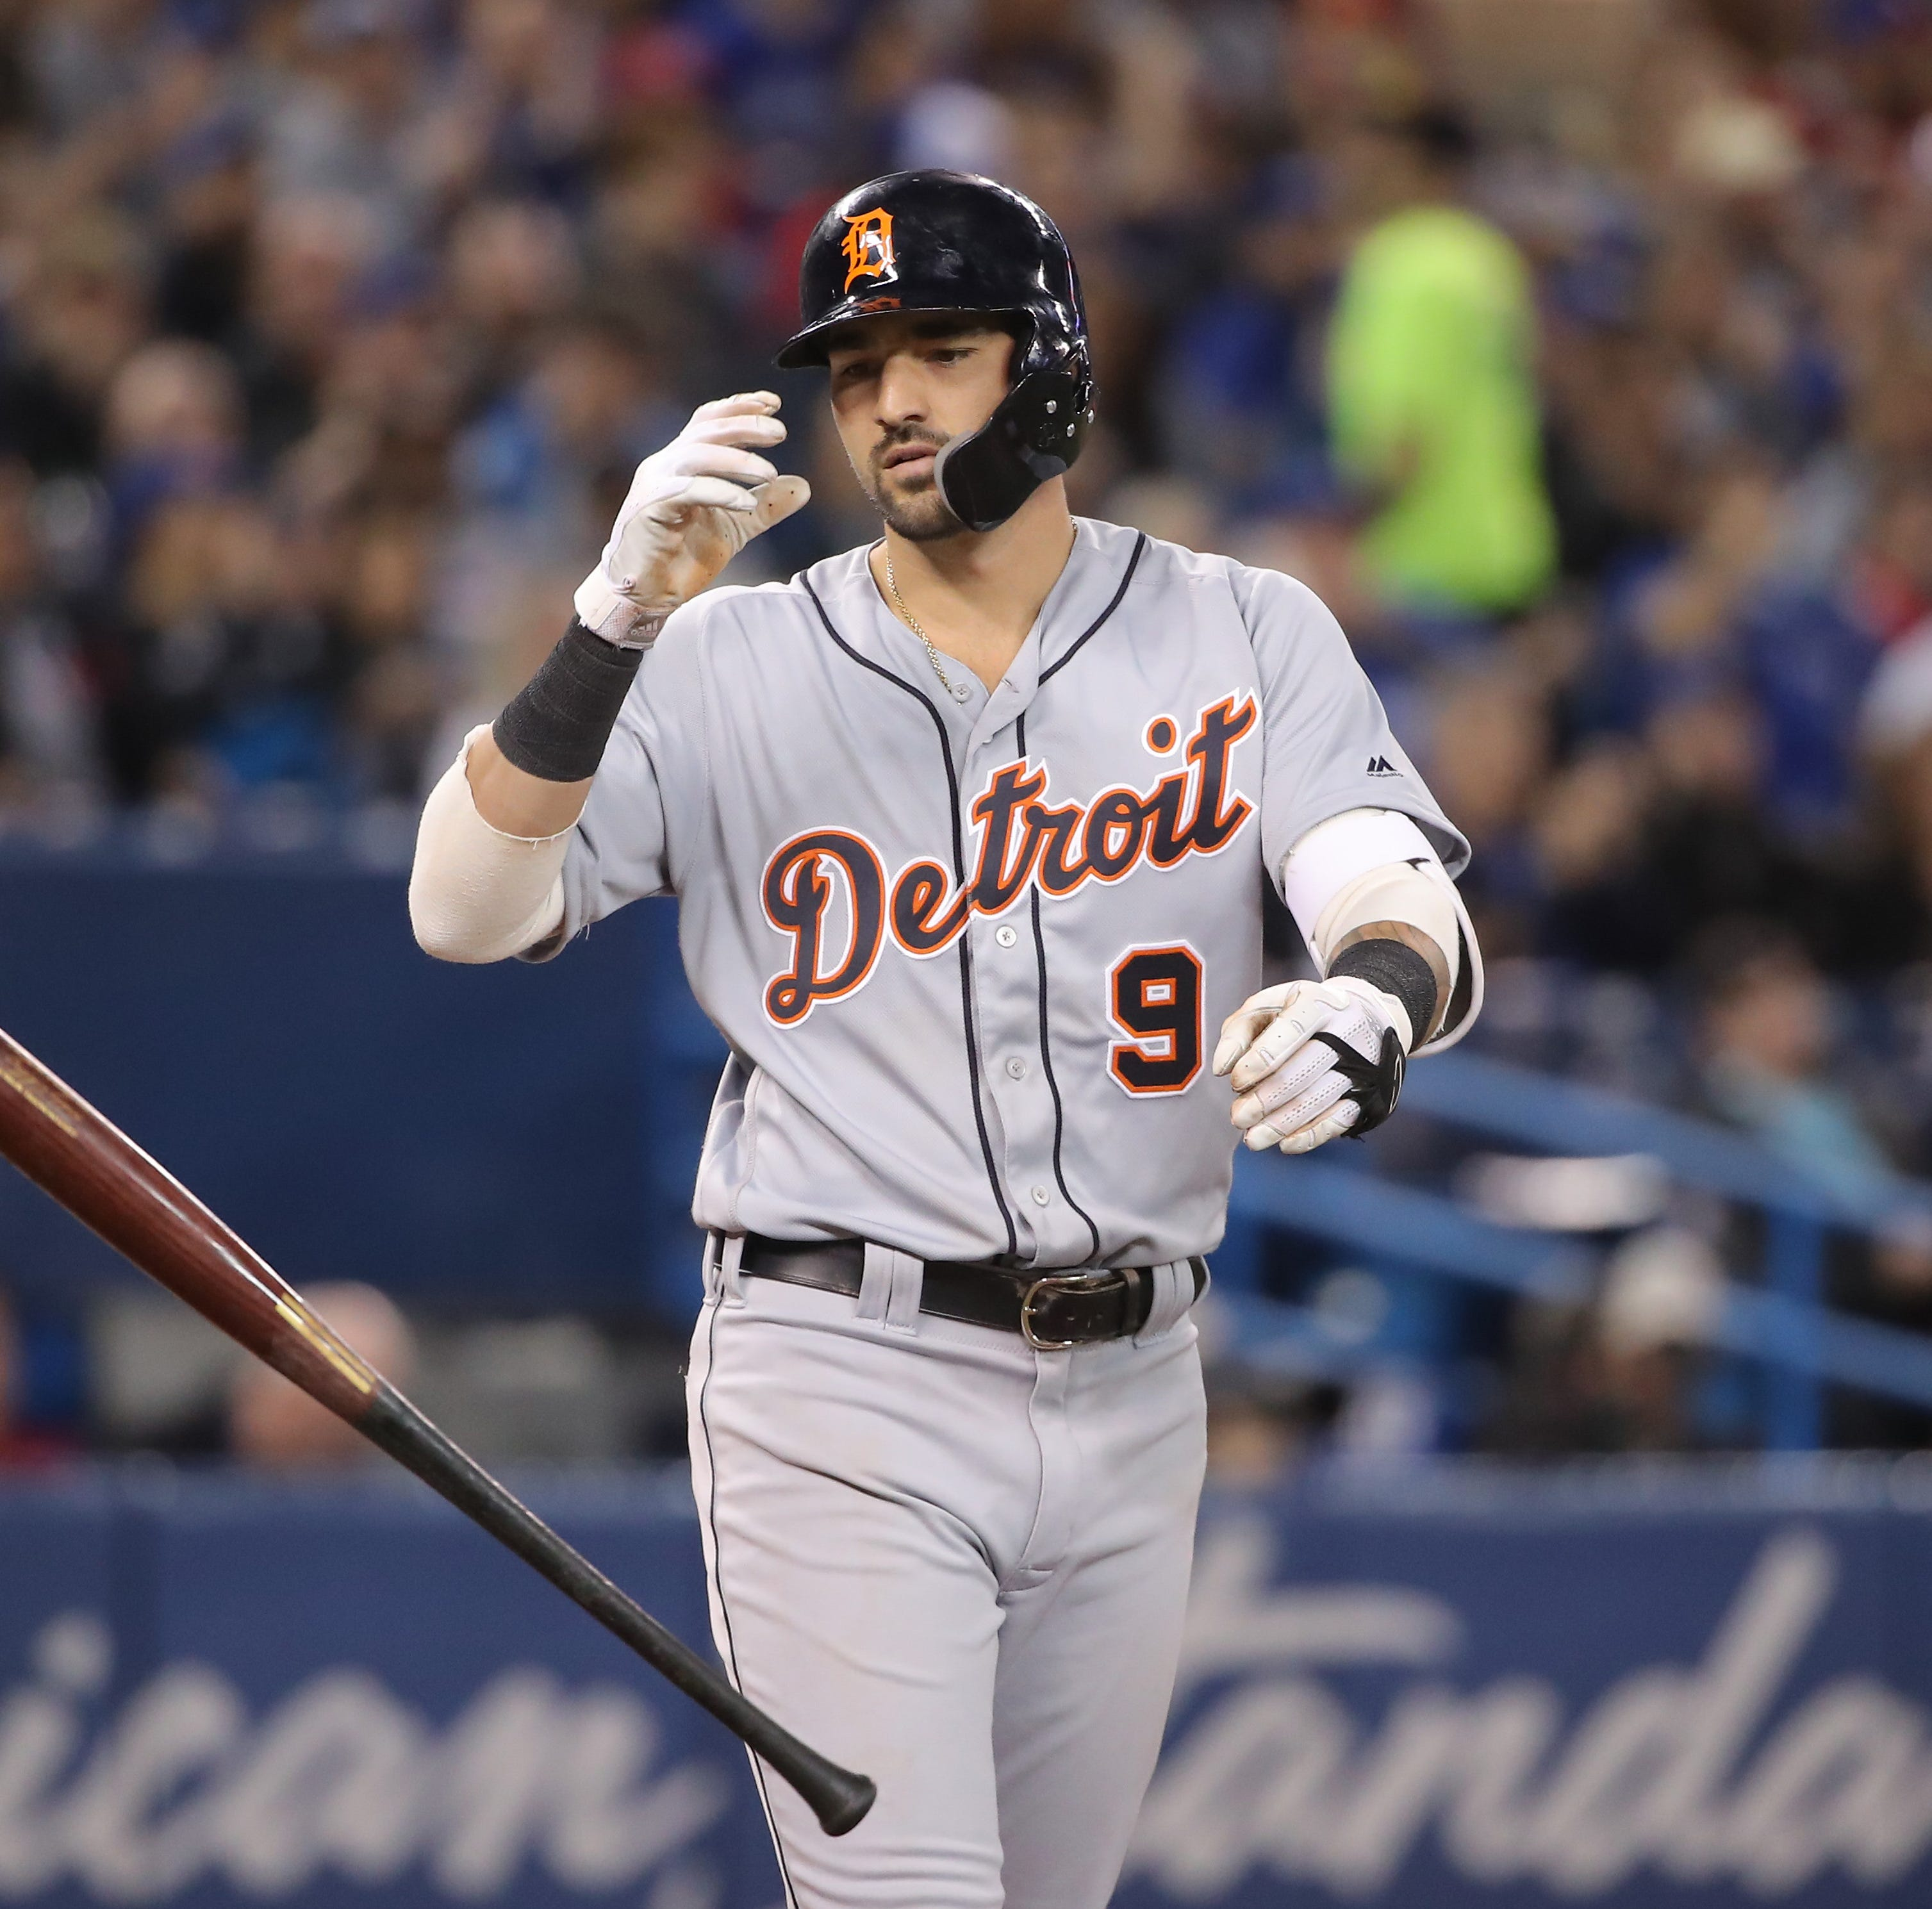 Have you seen the Detroit Tigers' offense? It's M.I.A. to start this season